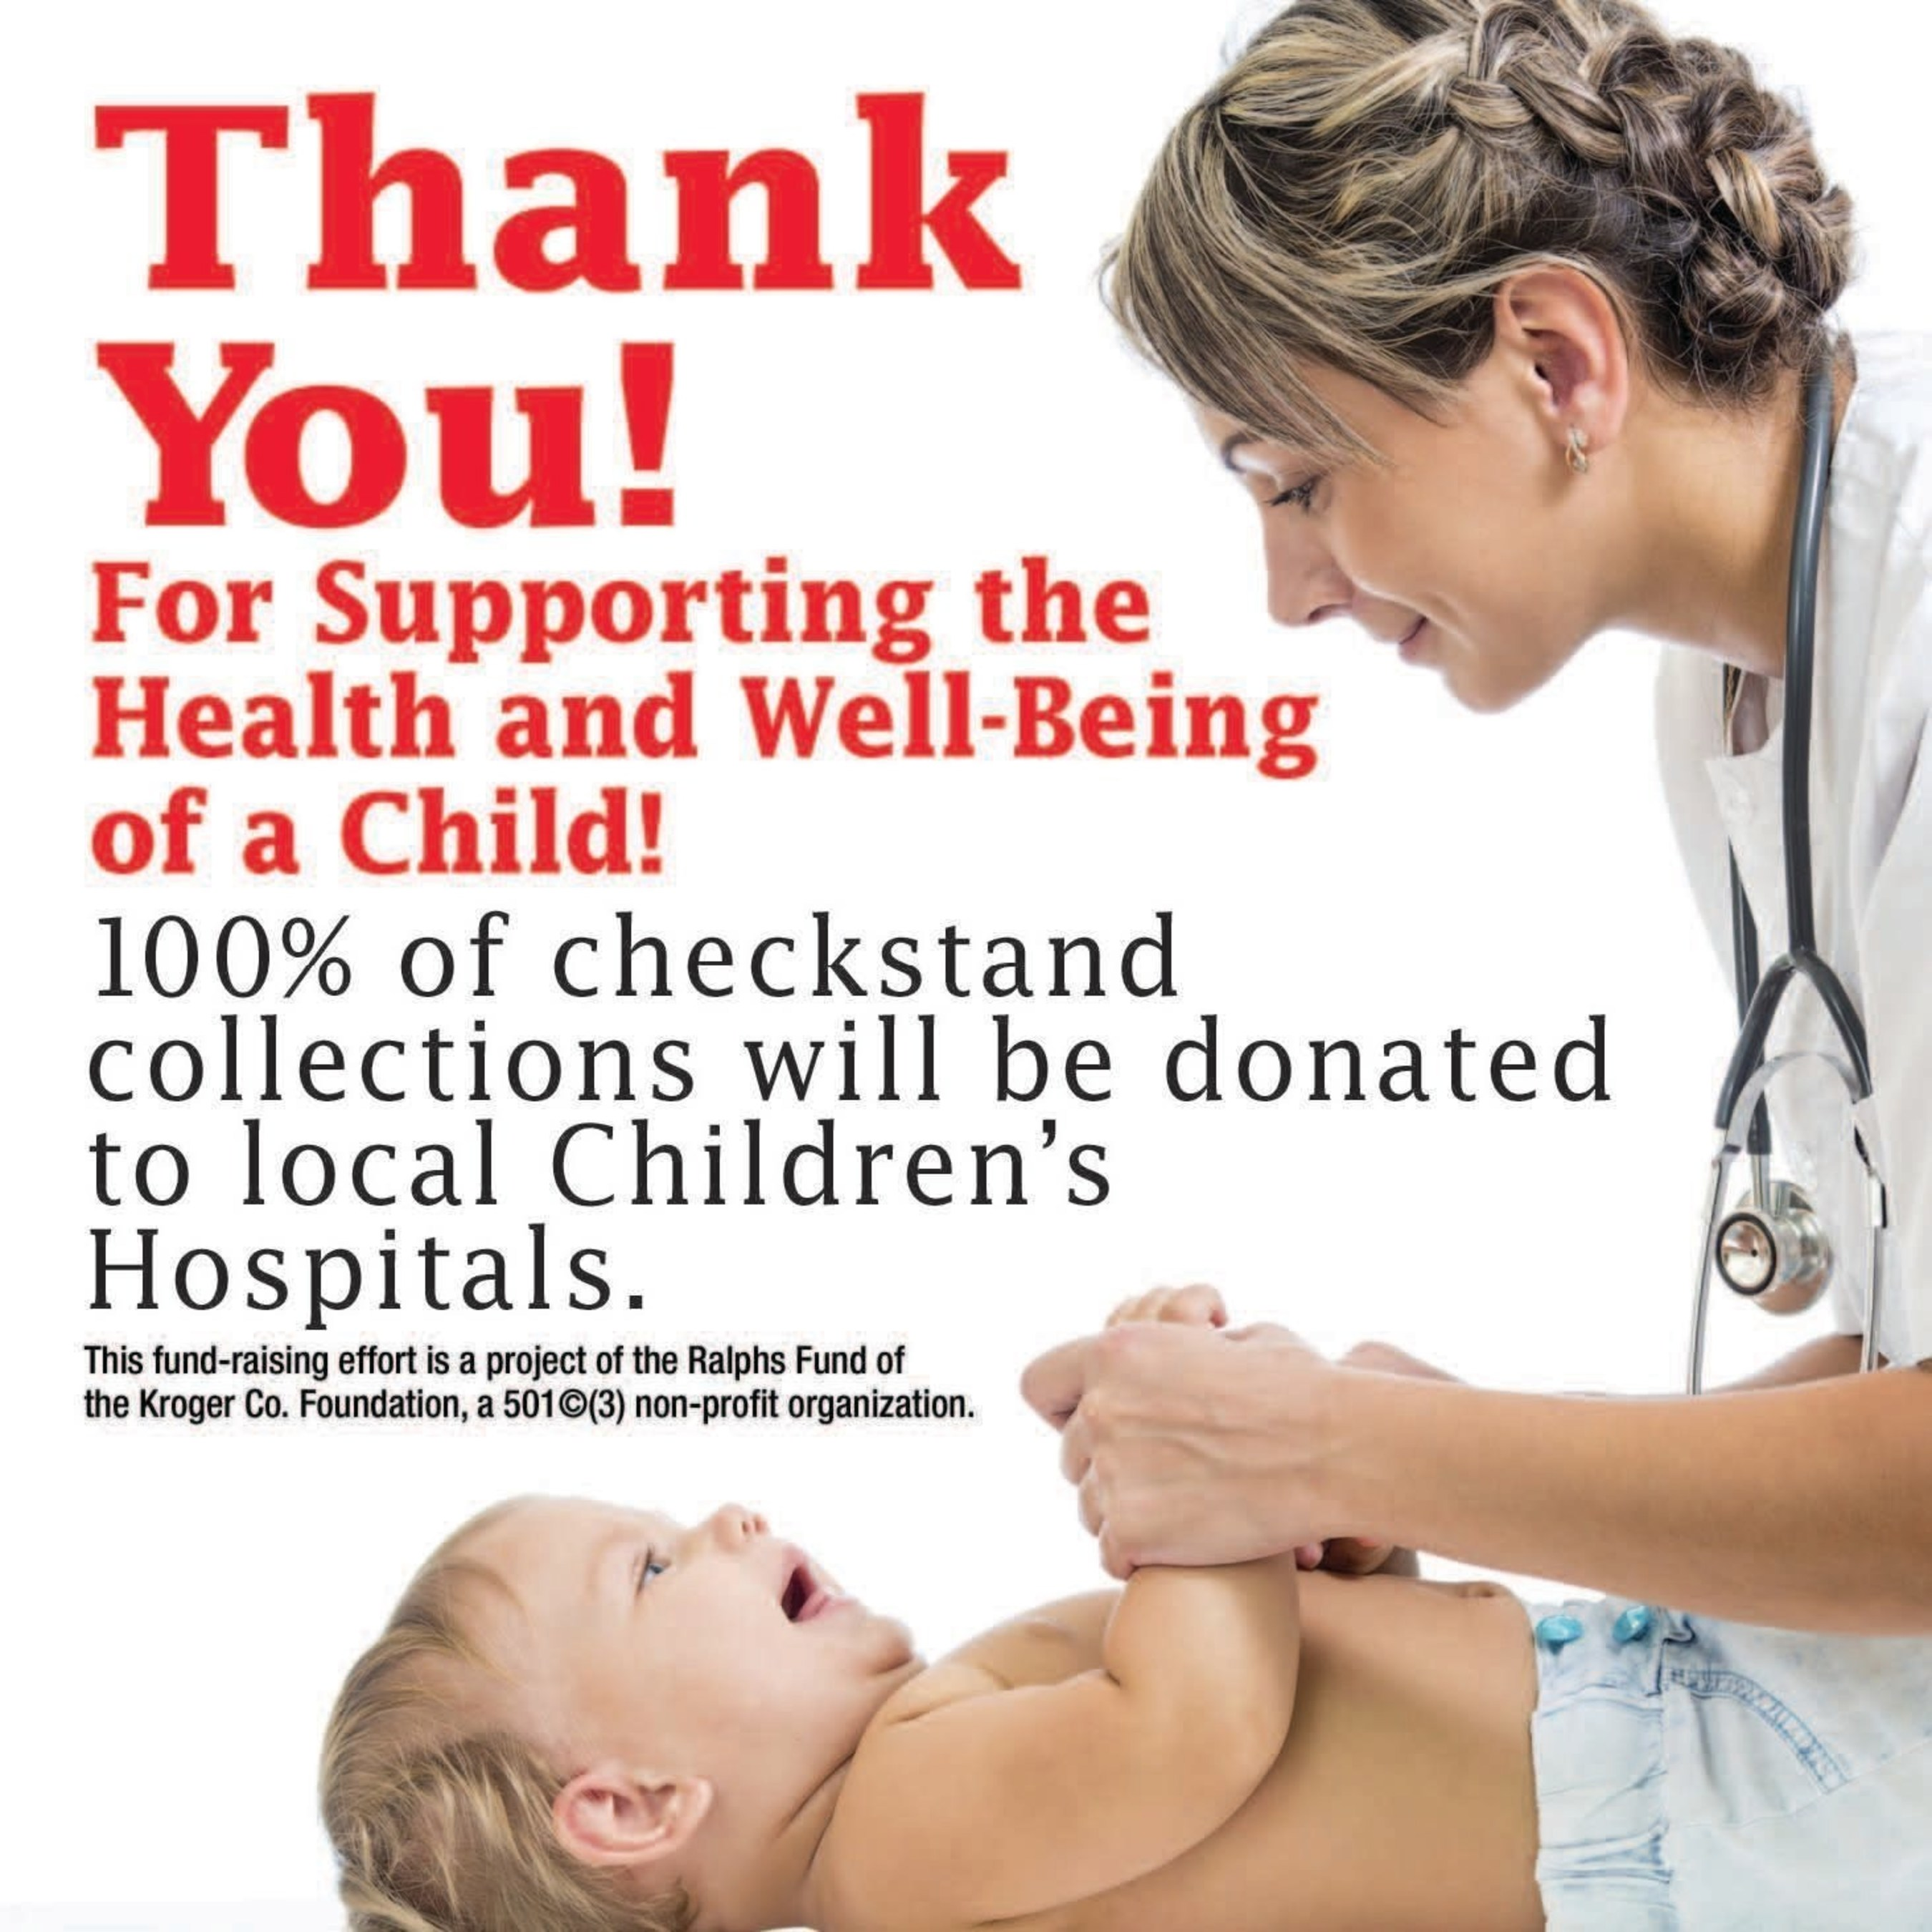 Through May 24, customers may support their local children's hospital by donating change at the checkstand ...